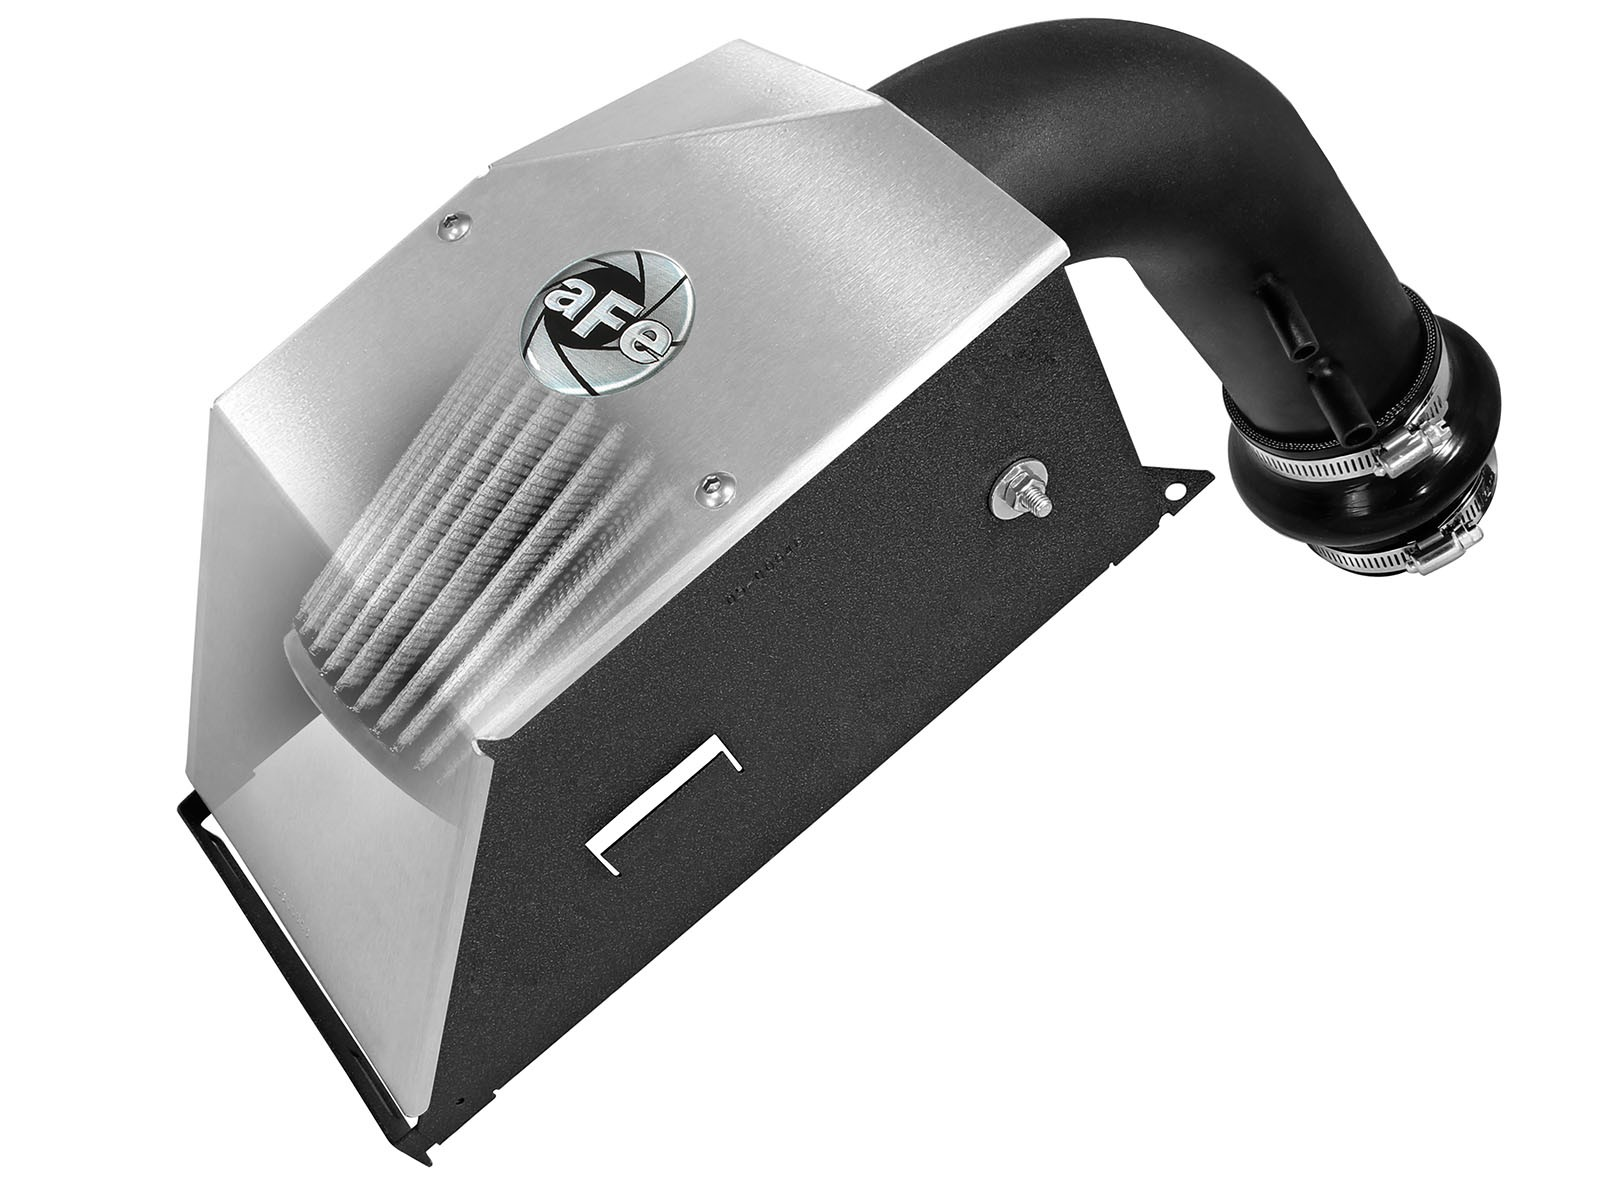 aFe POWER 51-12702 Magnum FORCE Stage-2 Pro DRY S Cold Air Intake System